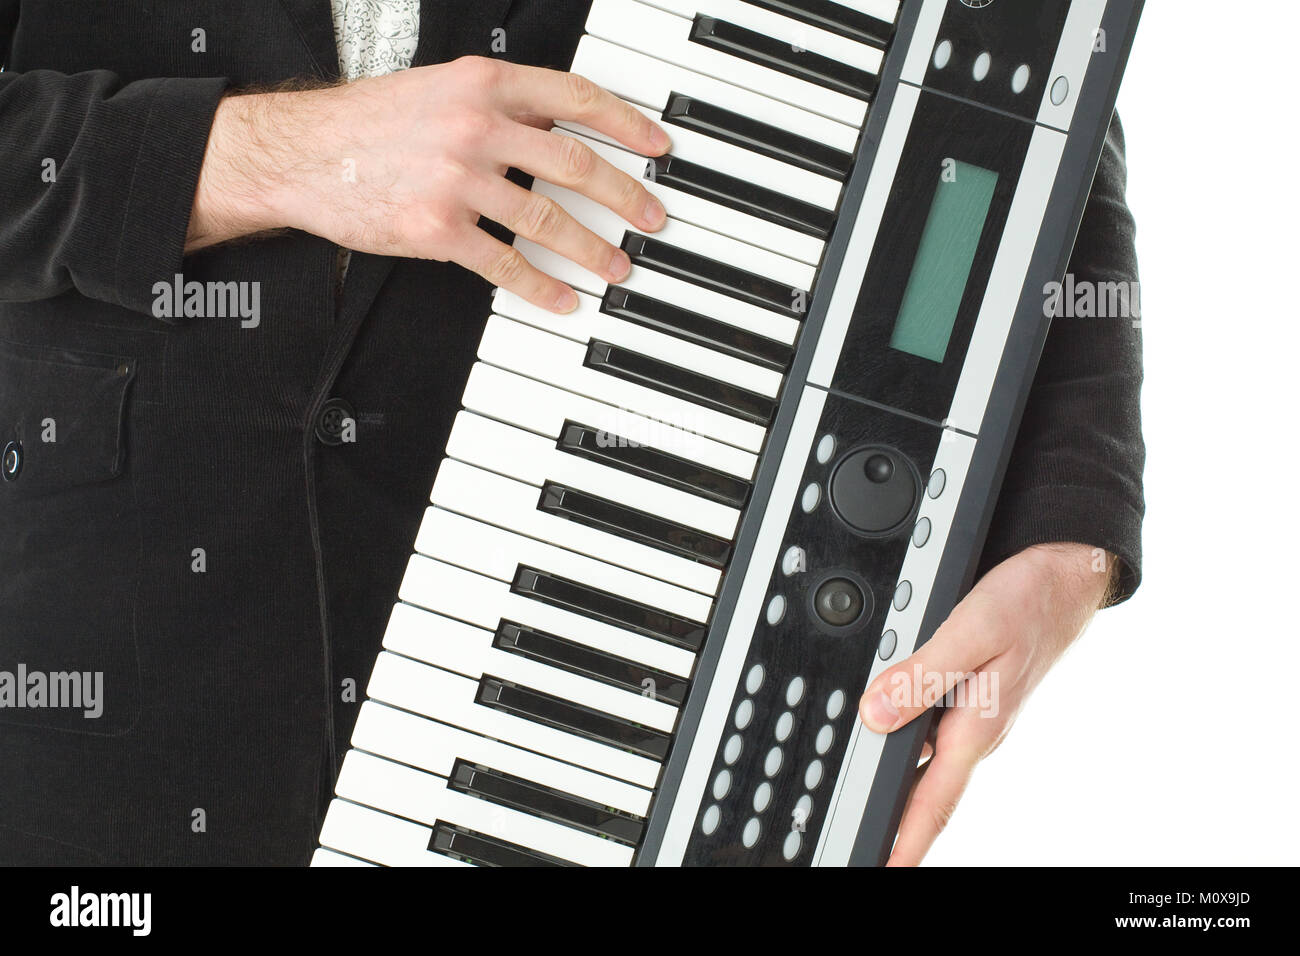 Music synthesizer in male hand - Stock Image